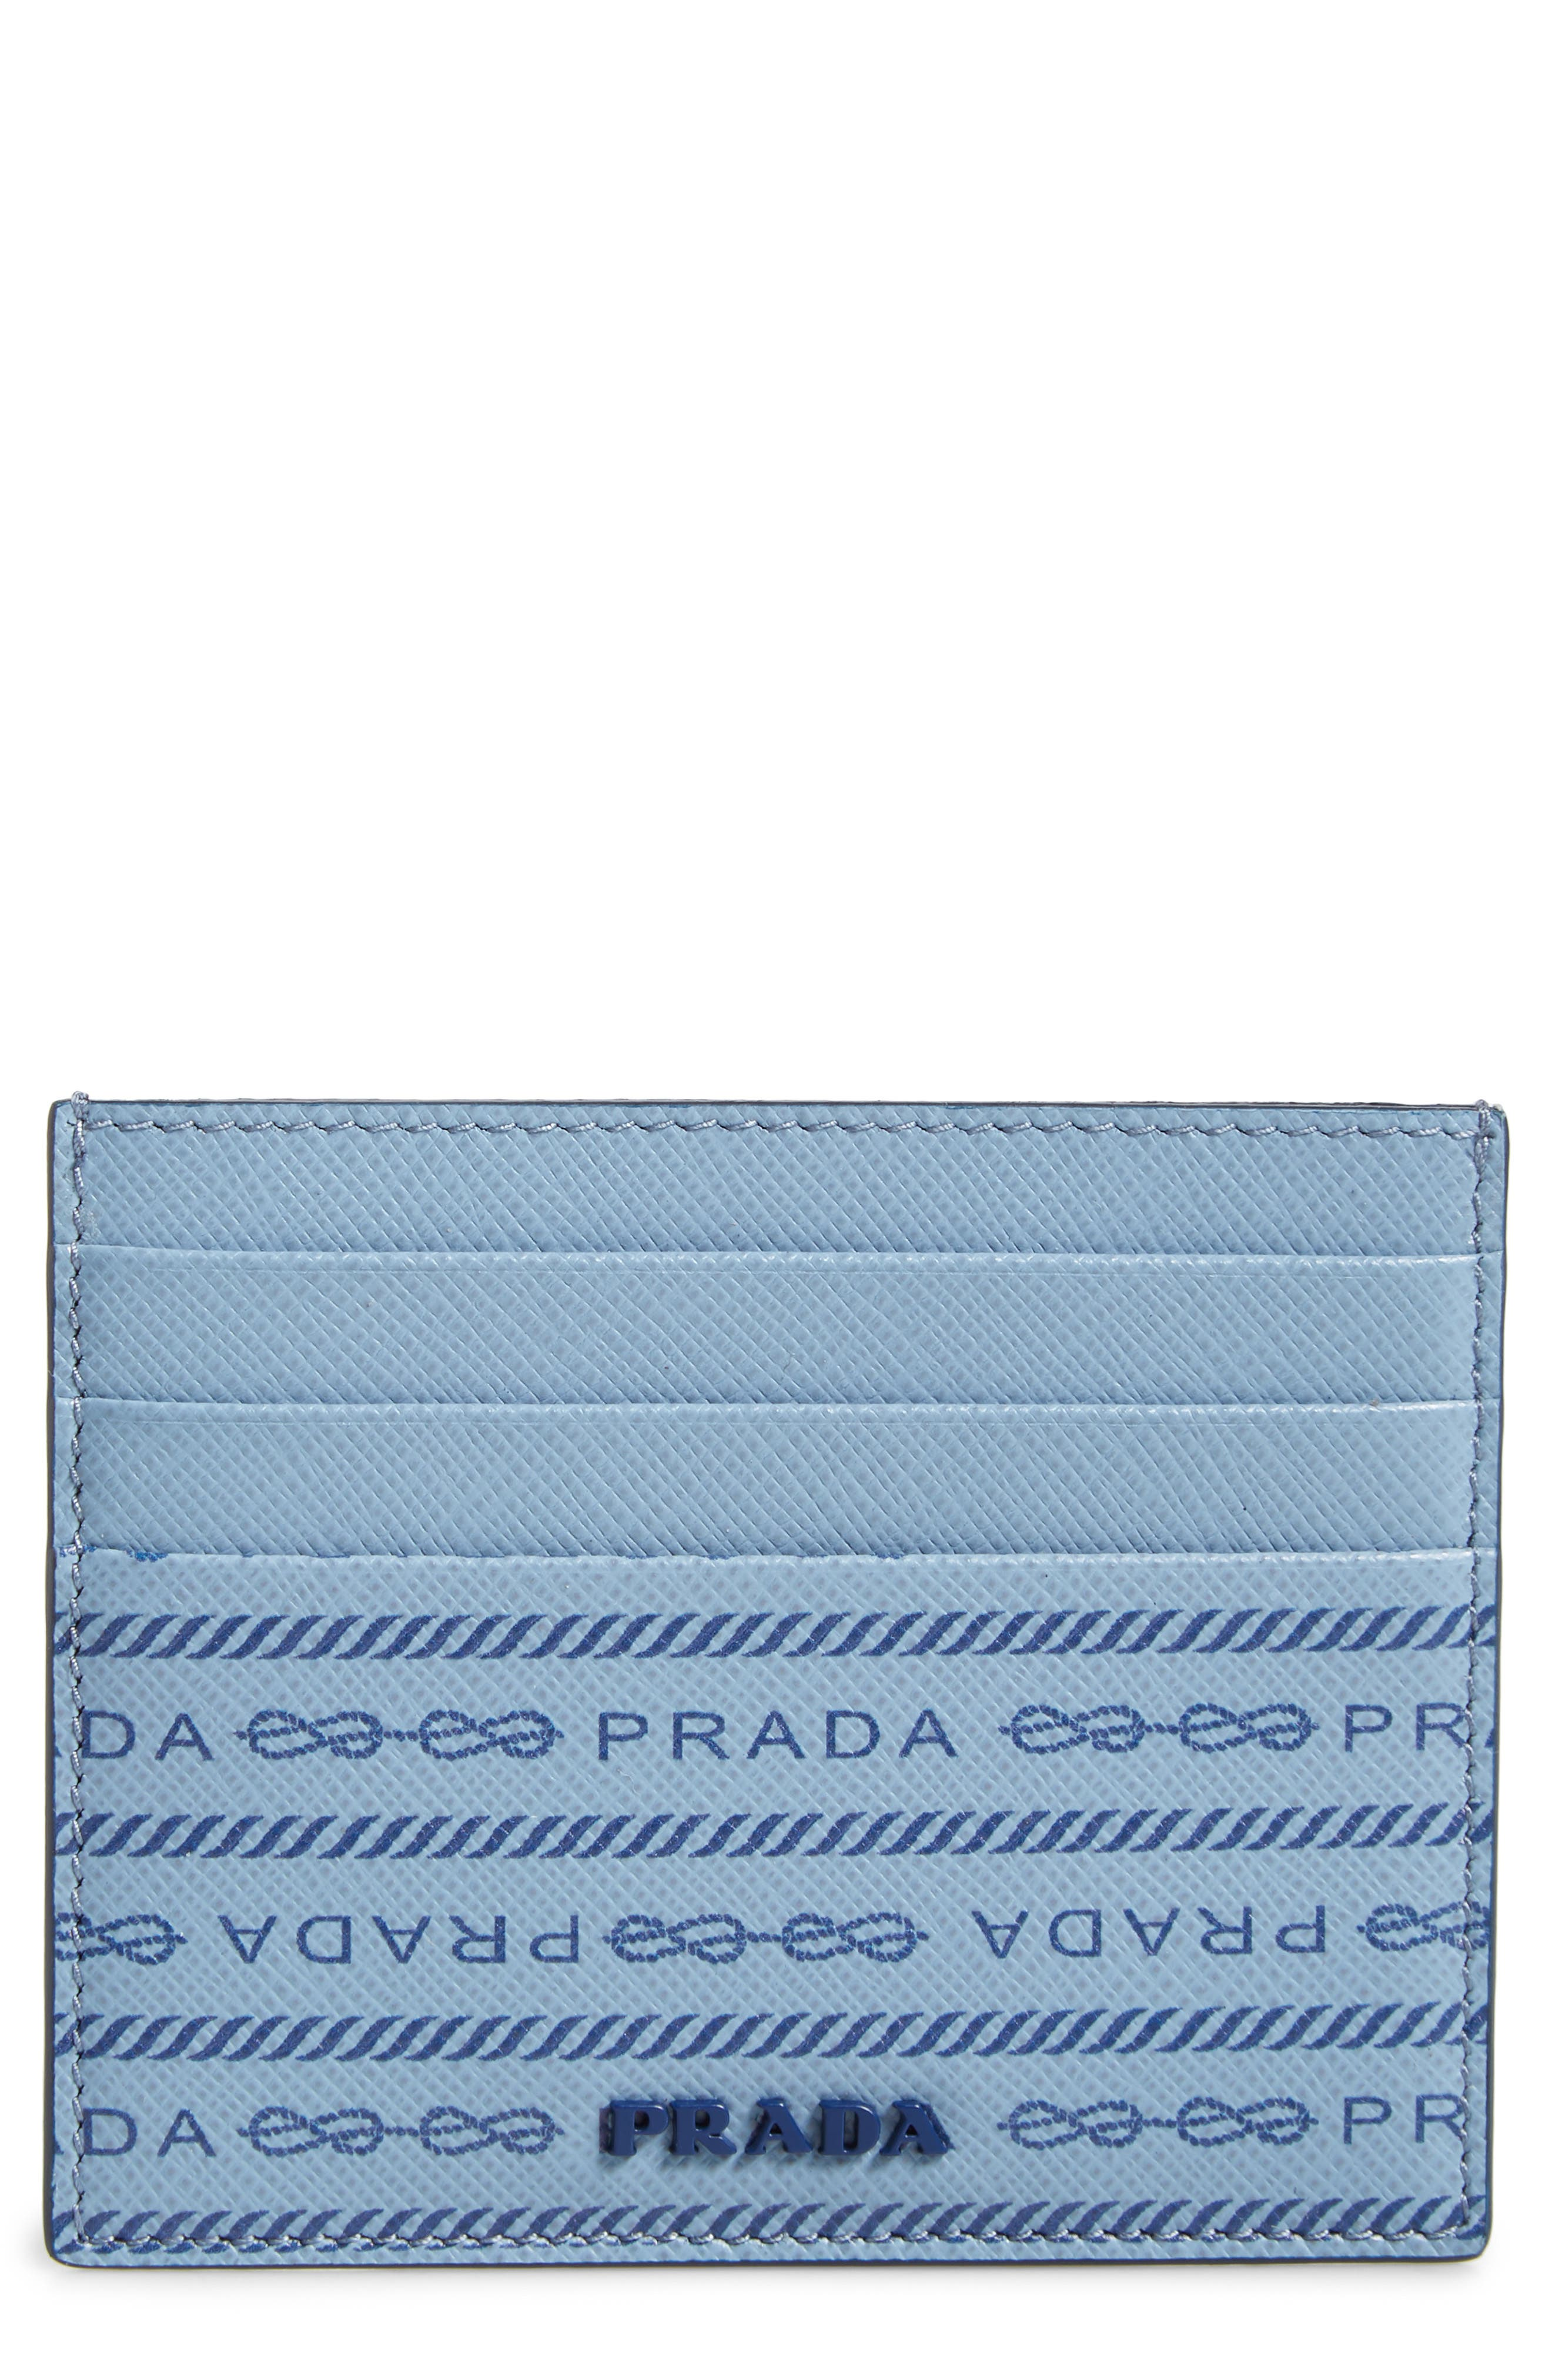 Repeating logos brand a slim card case made from crosshatch-textured calfskin leather. Style Name: Prada Logo Print Leather Card Case. Style Number: 5968445. Available in stores.